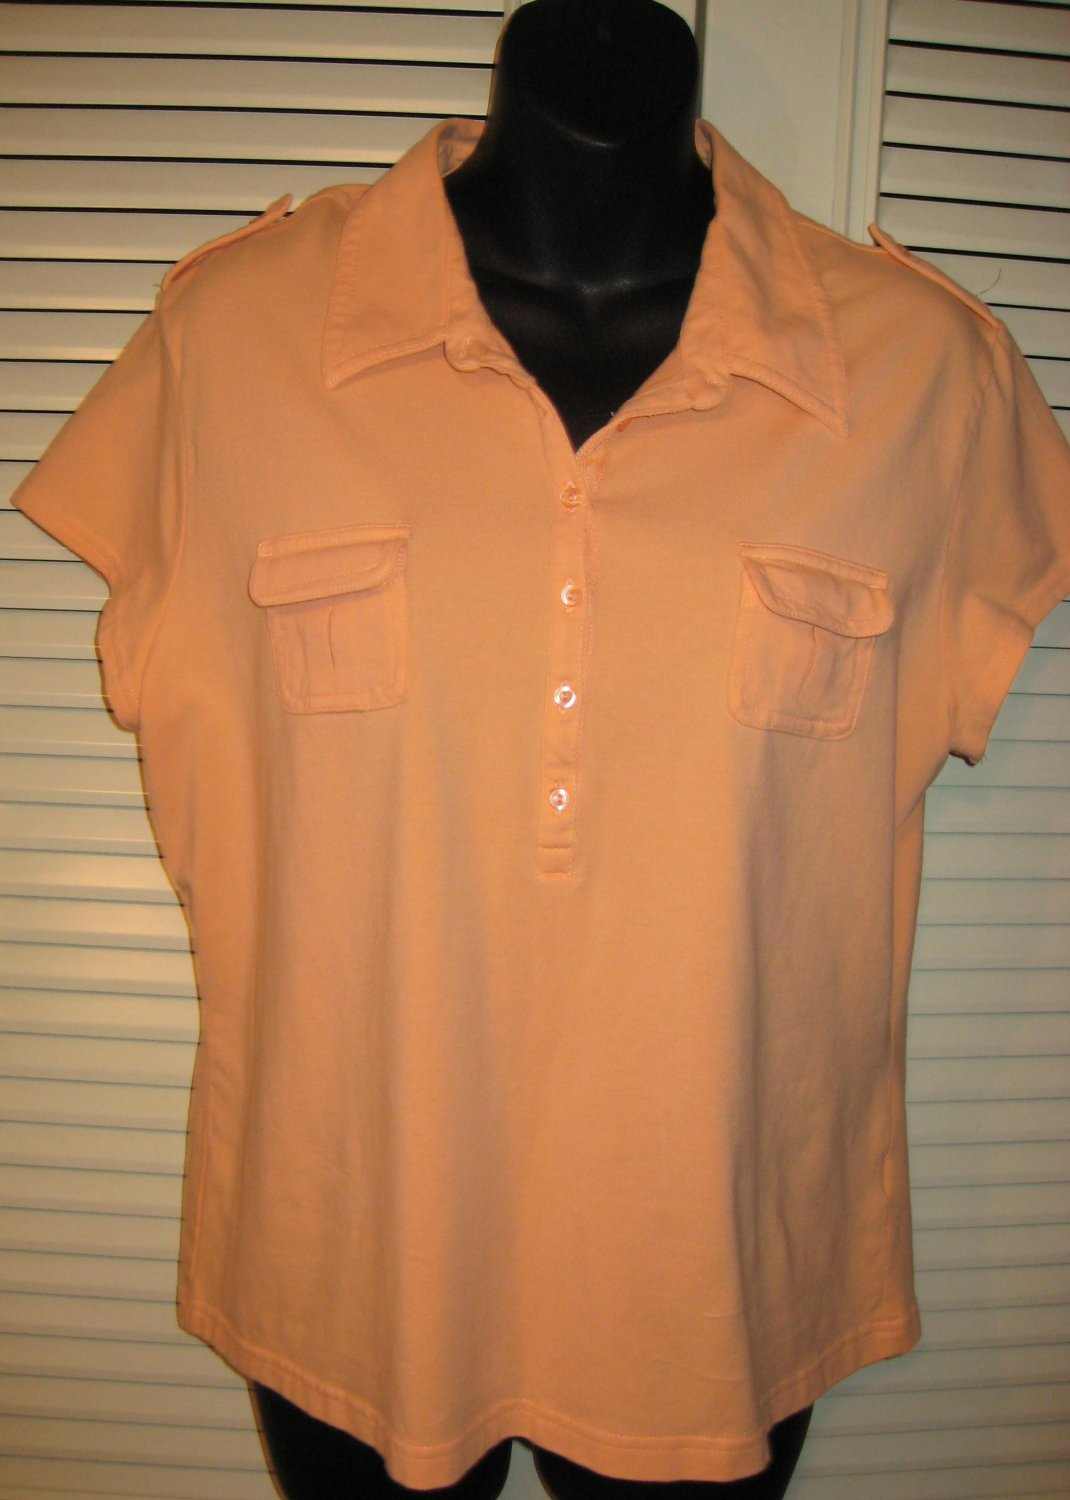 SONOMA Peach Top Shirt XL Free S&H in USA/Canada